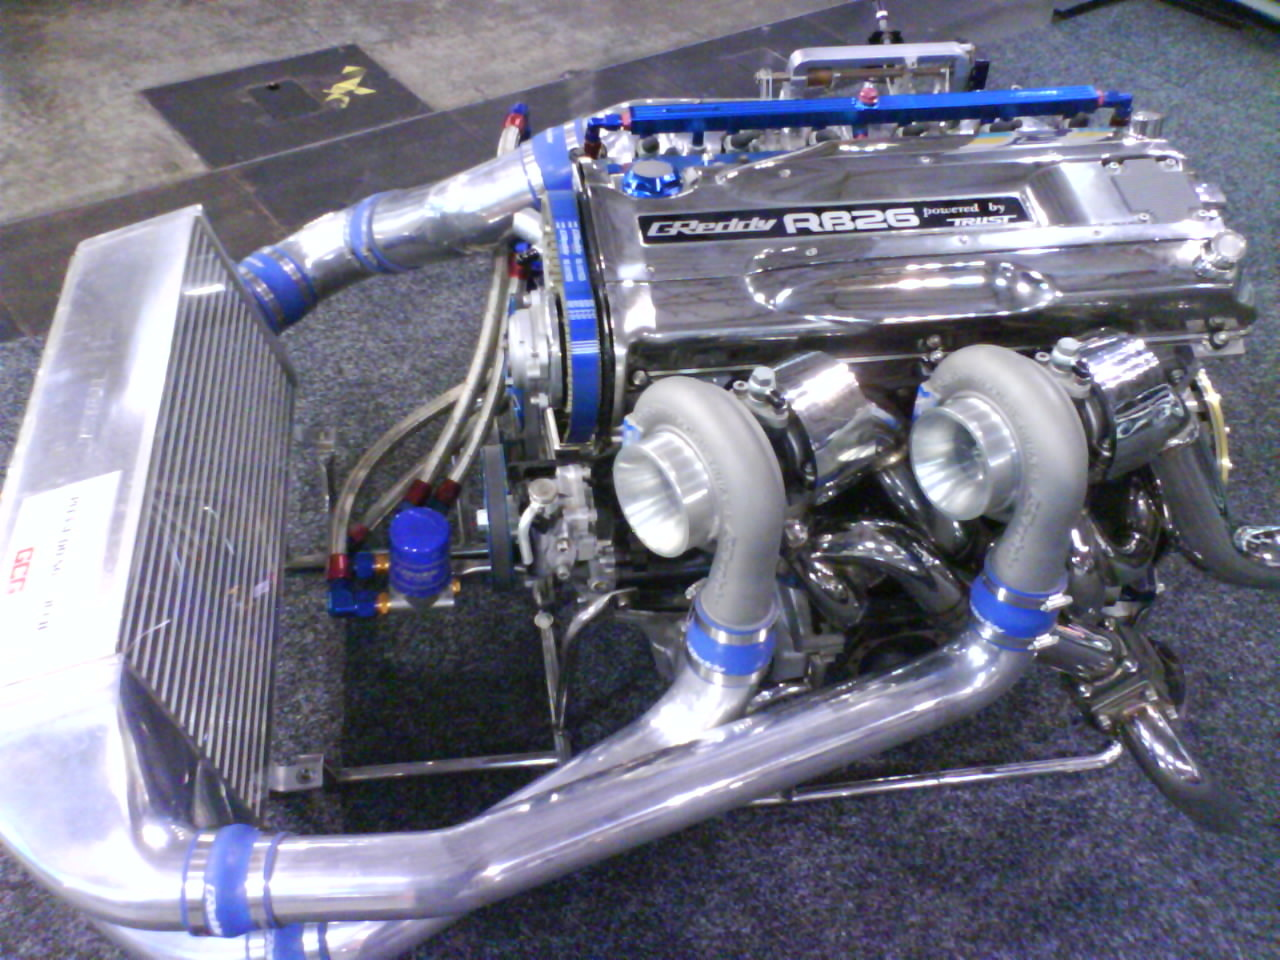 Nissan 240sx Engine Diagram Bgmt Data 1992 Pickup Car Customization Questions 2jz Vs Rb26dett Cargurus 1990 Wiring 97